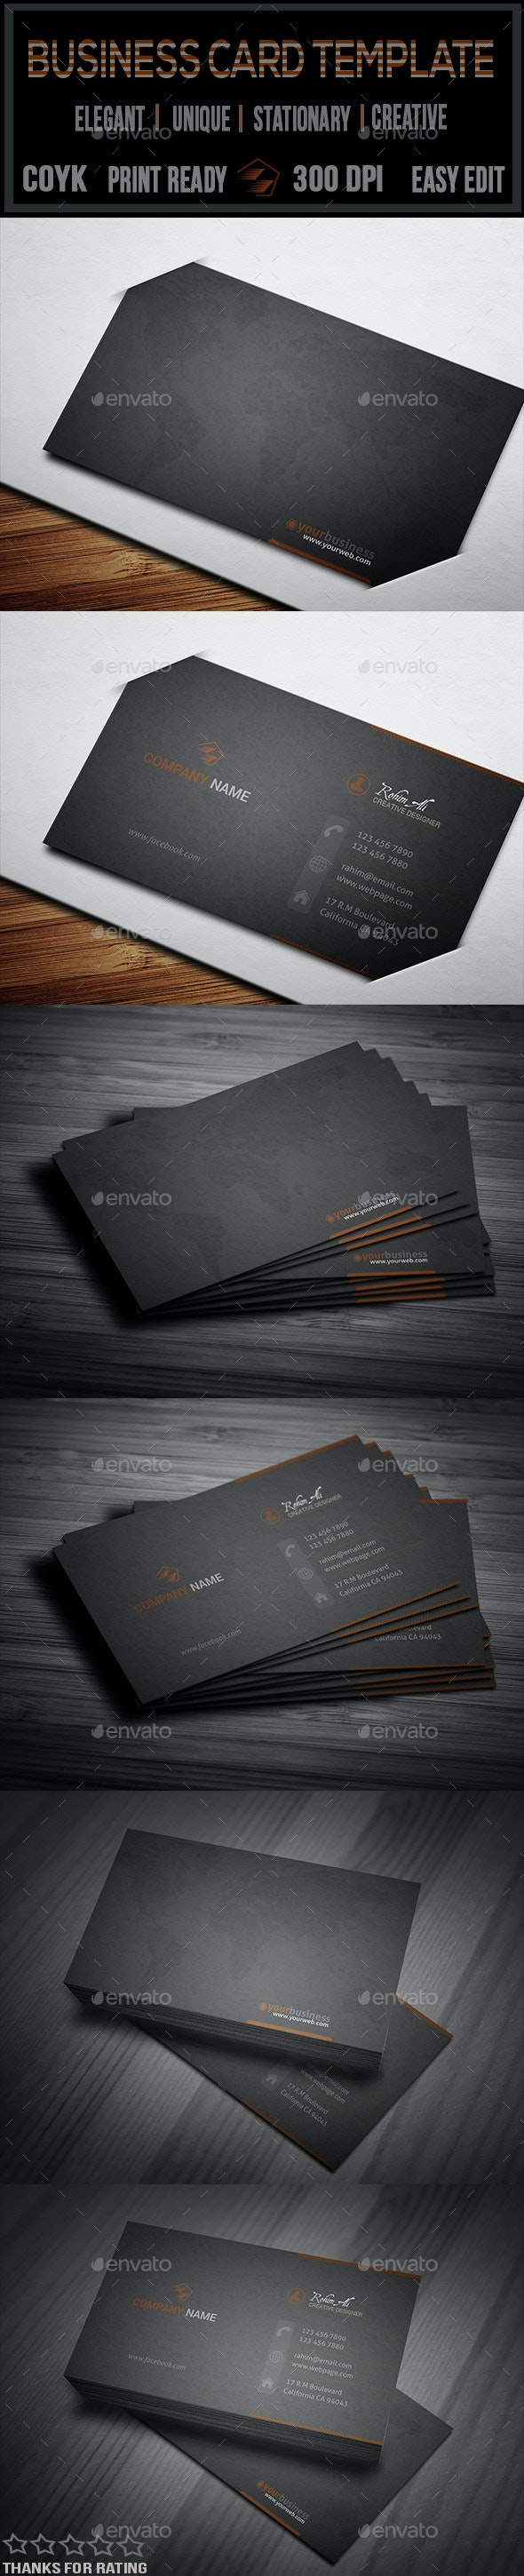 Business Card Part-2 - Creative Business Cards